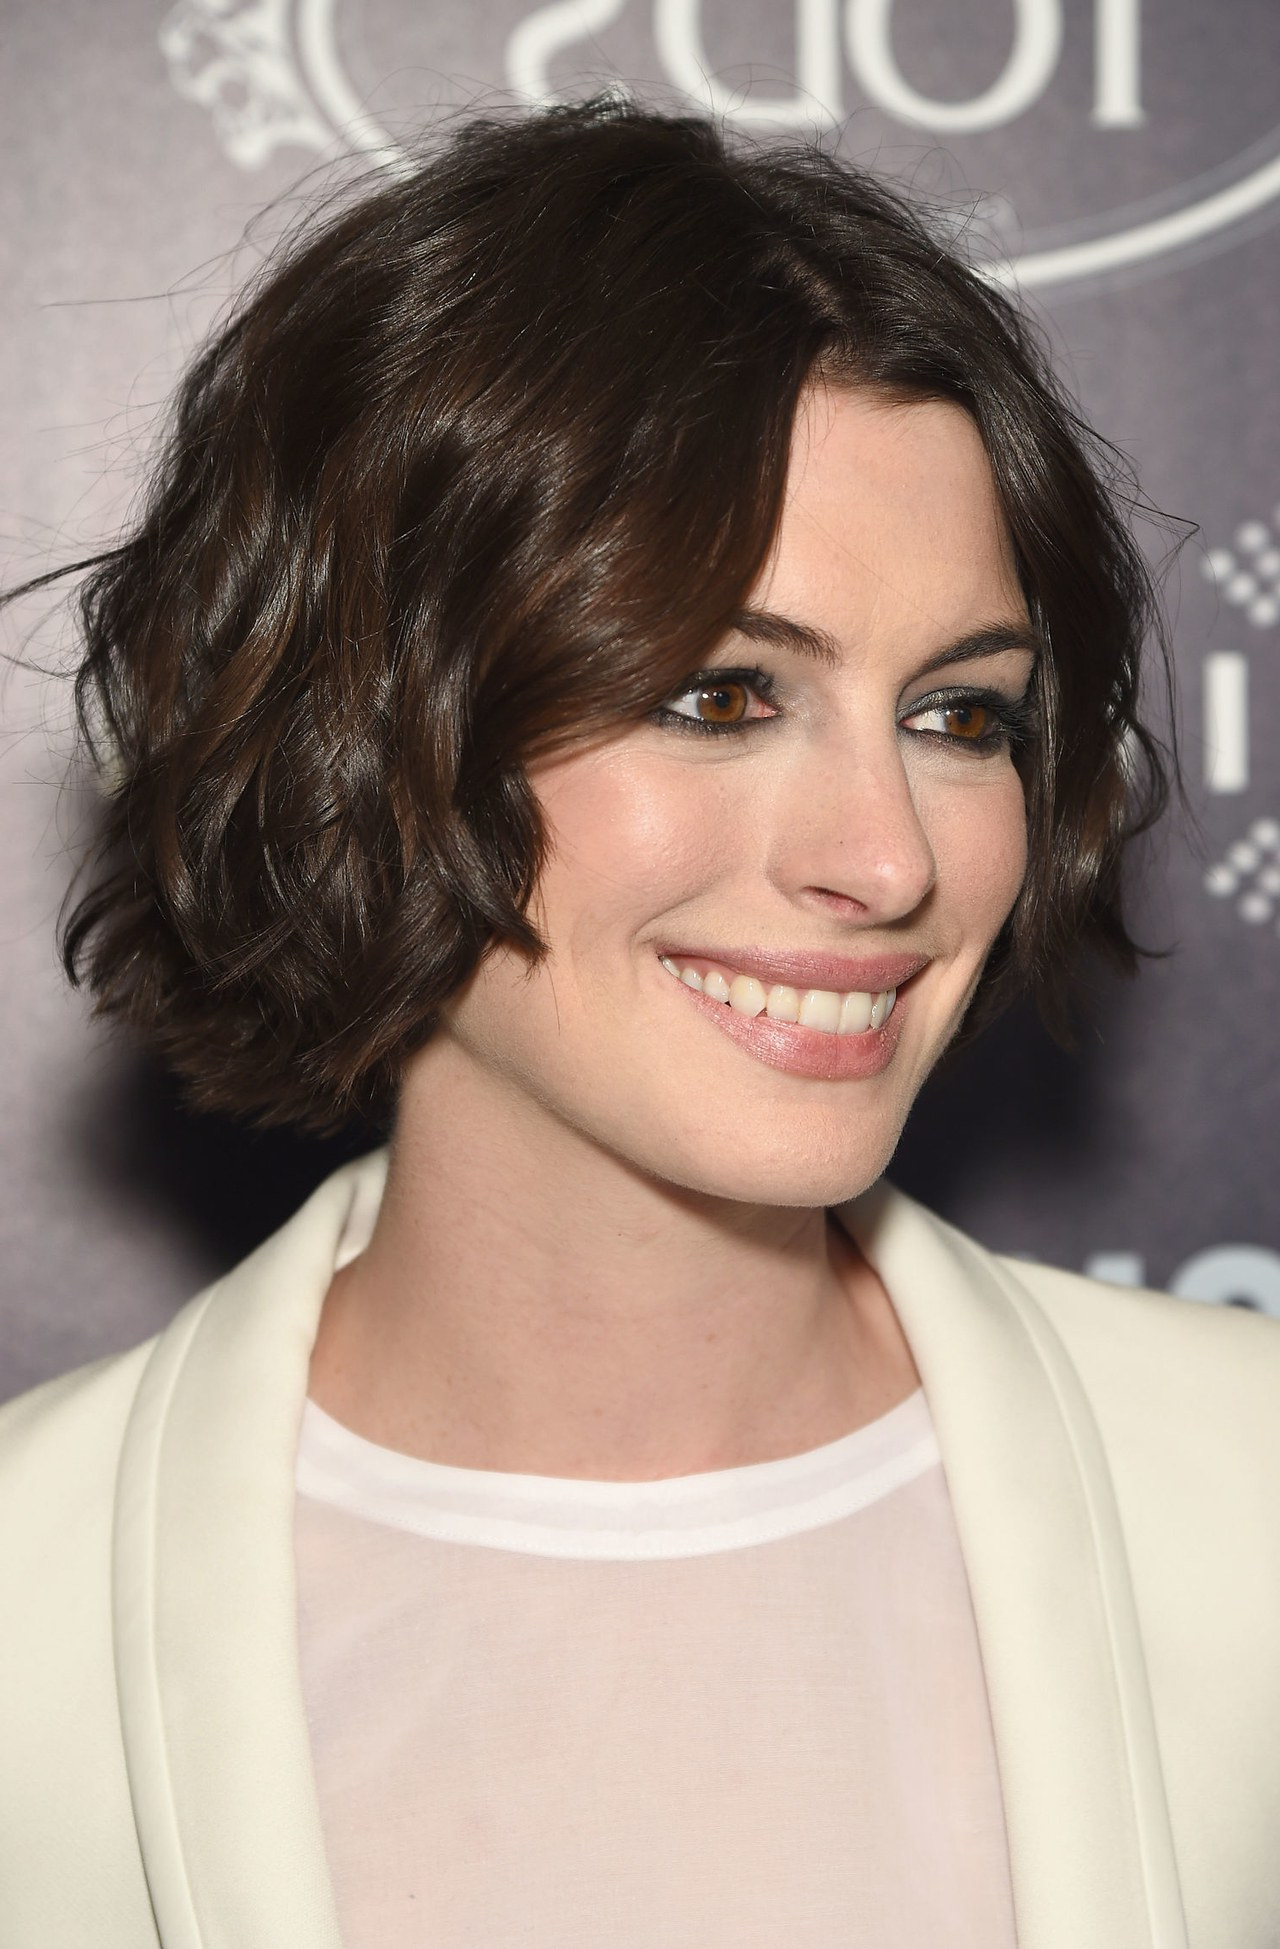 Anne Hathaway Perfects The Short Beachy Wave Hairstyle | Glamour Within Anne Hathaway Short Haircuts (Gallery 12 of 25)